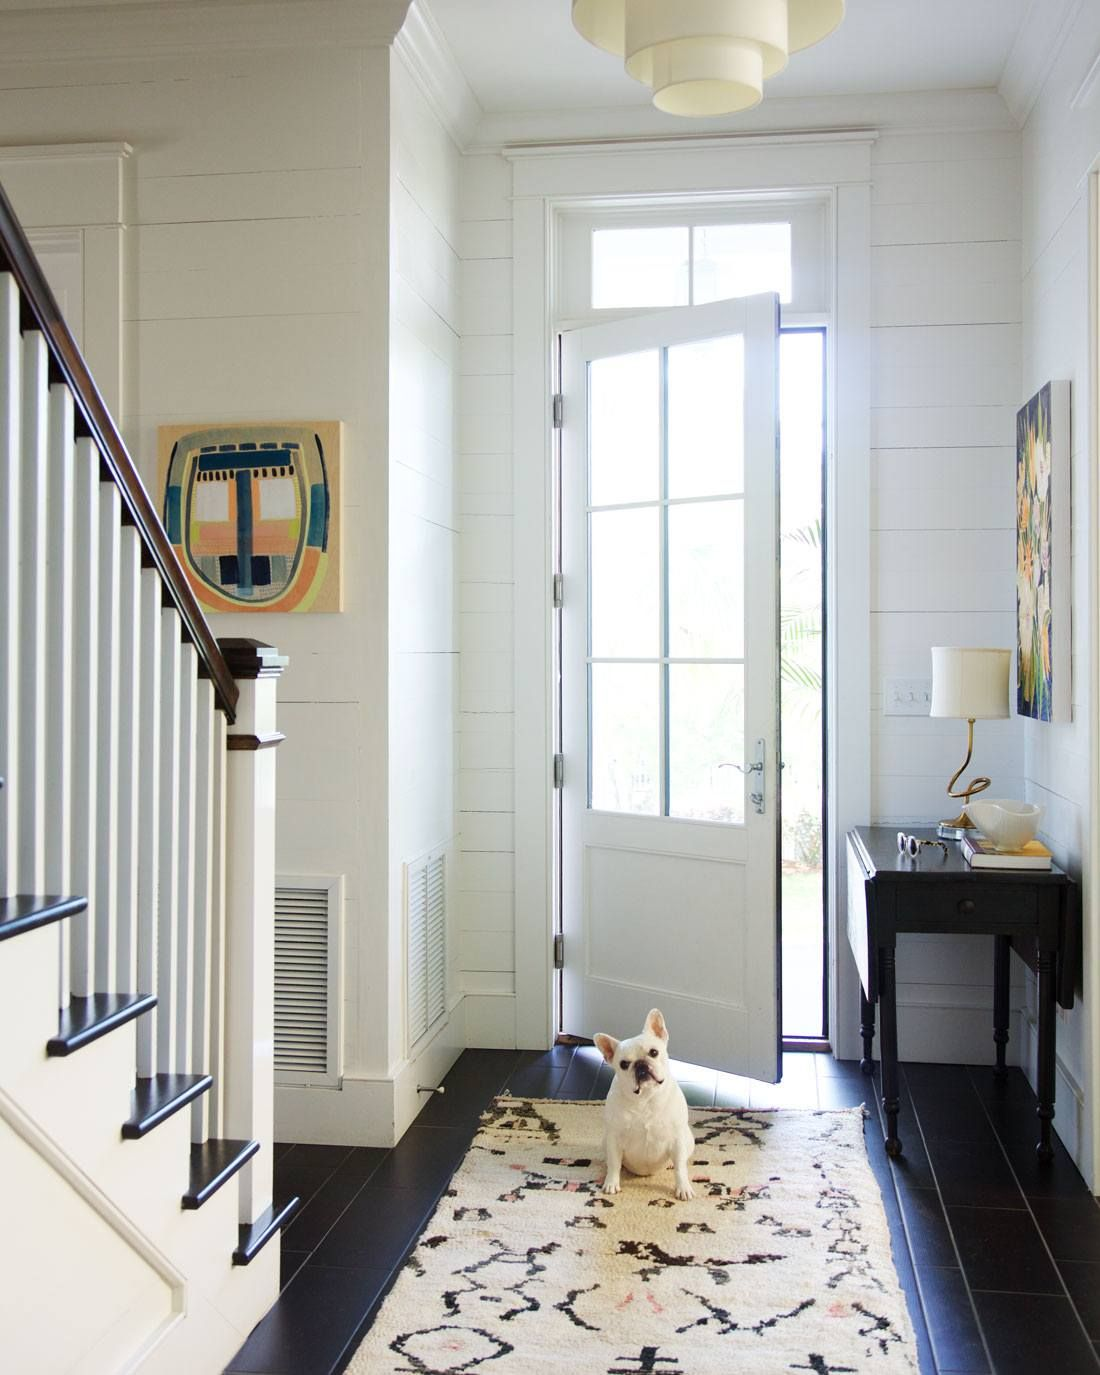 16 Tricks To Make Your Small Rooms Look Bigger + Mistakes To Avoid ...